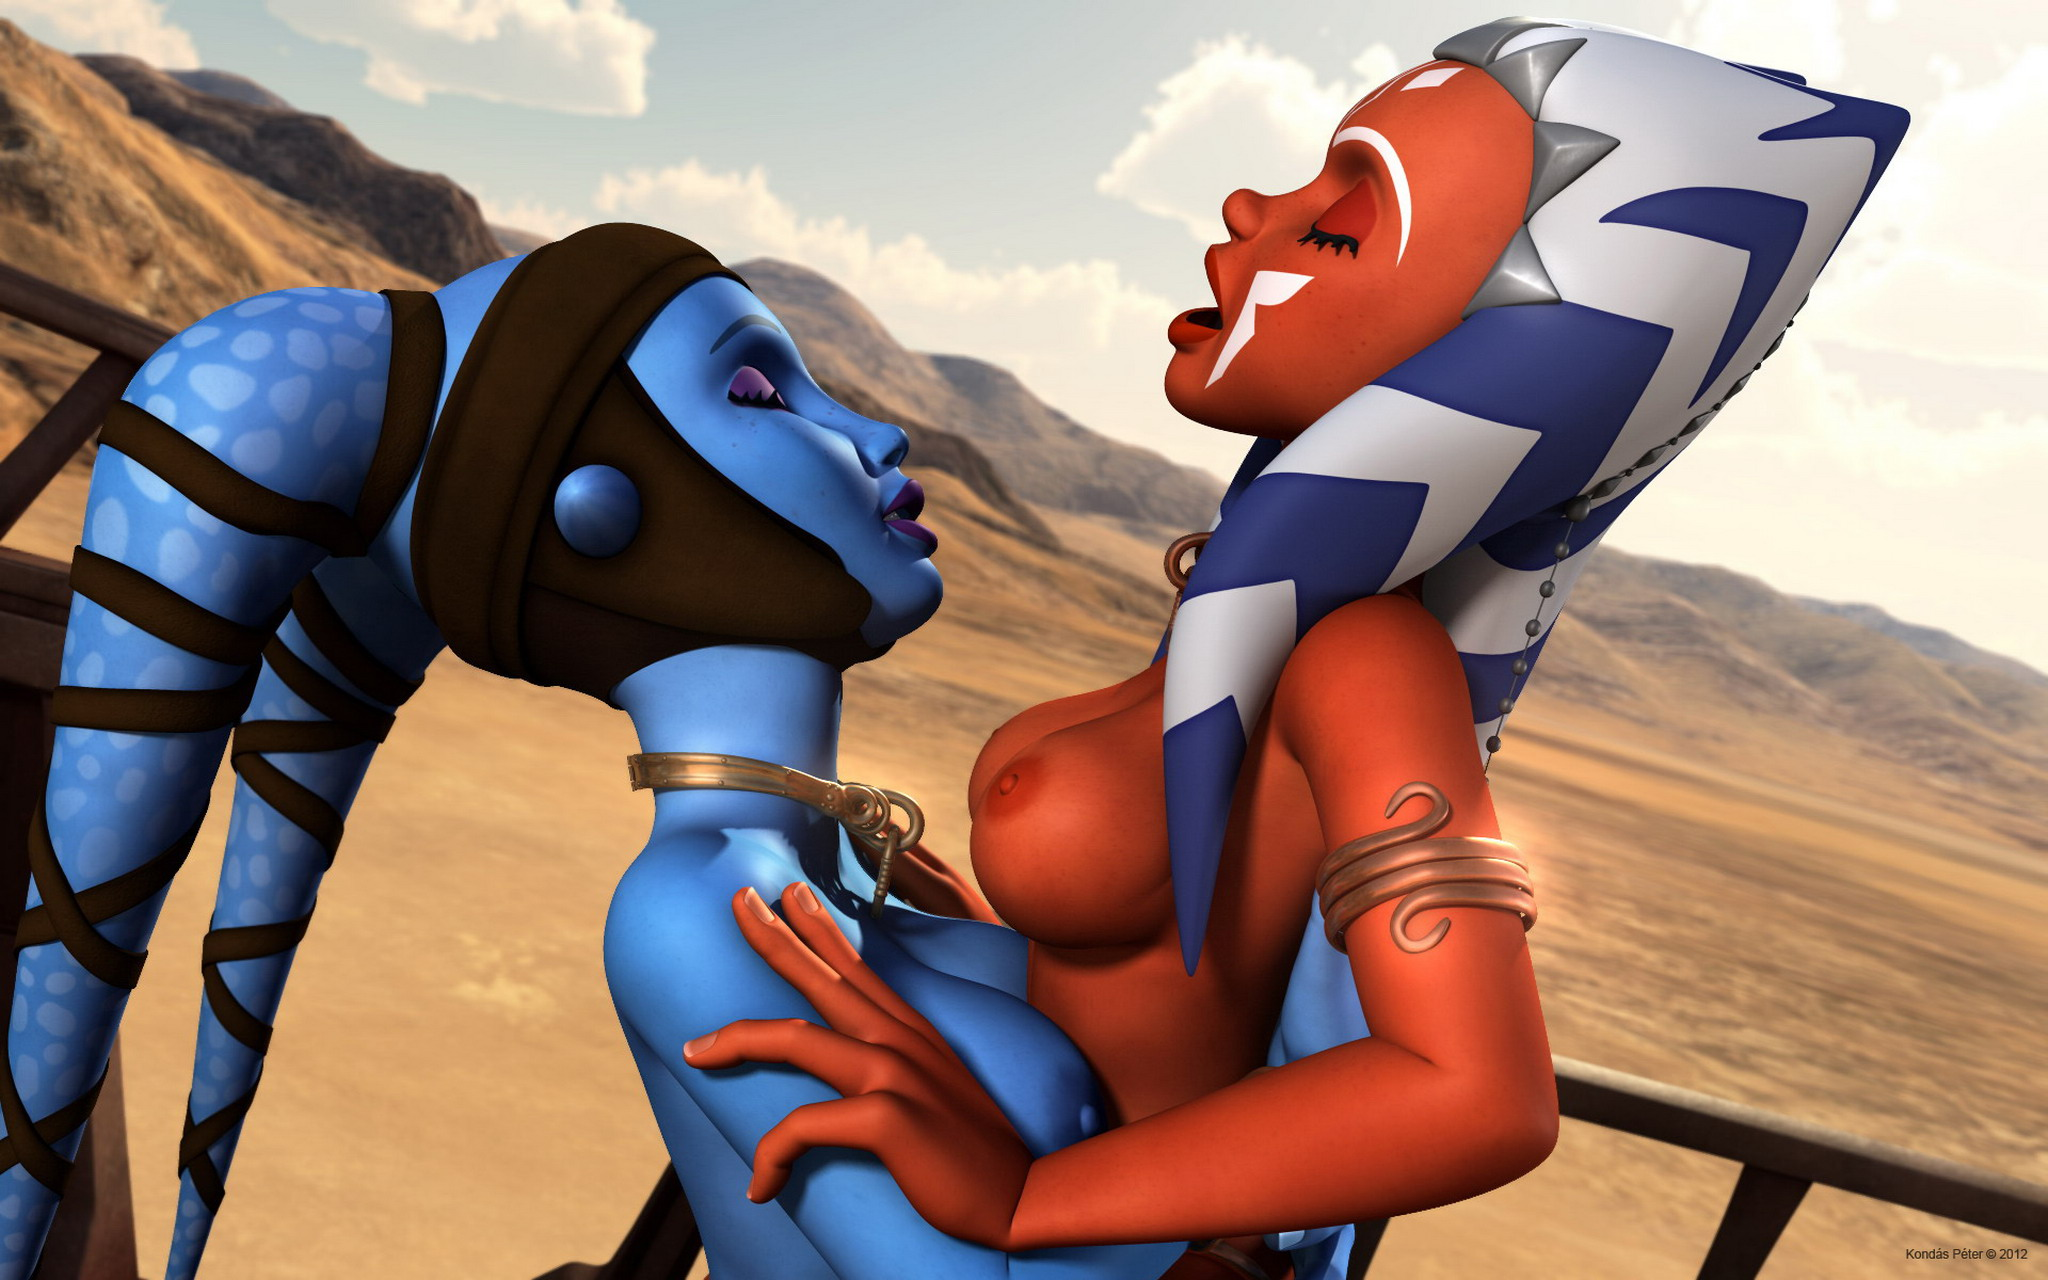 Porno gif ahsoka tano video porno woman